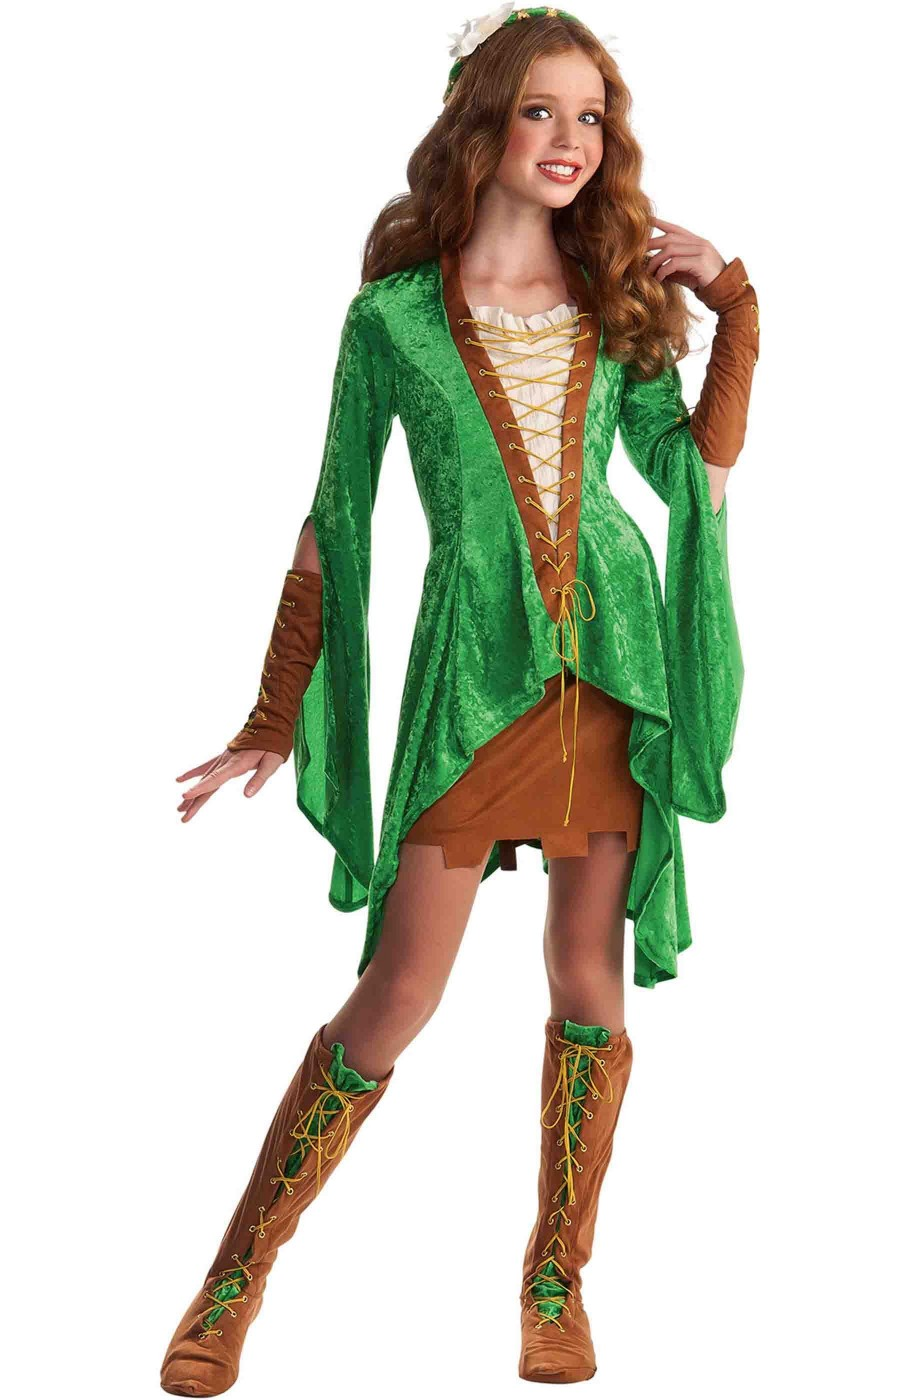 Costume cosplay medievale Lady Maid Marion o elfa verde